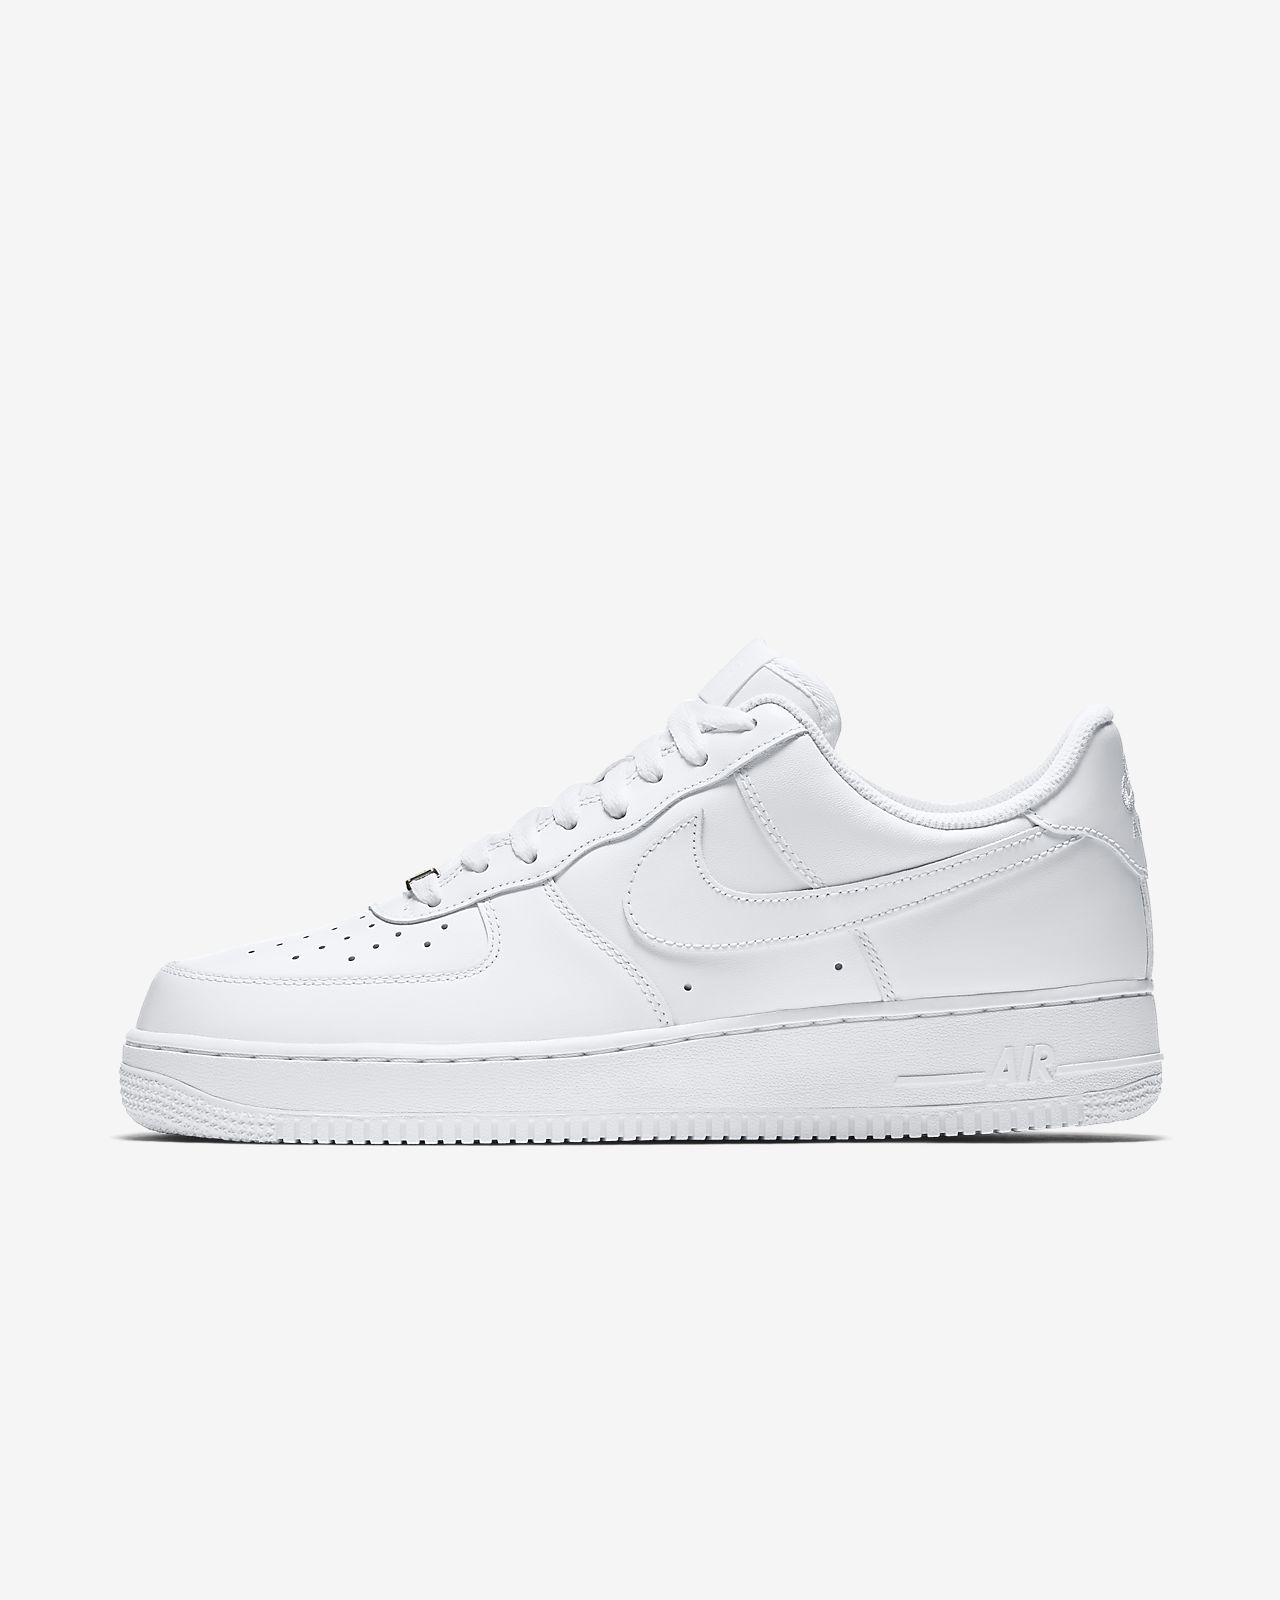 Air Force 1 '07 Men's Shoe | Nike air force, Air force one